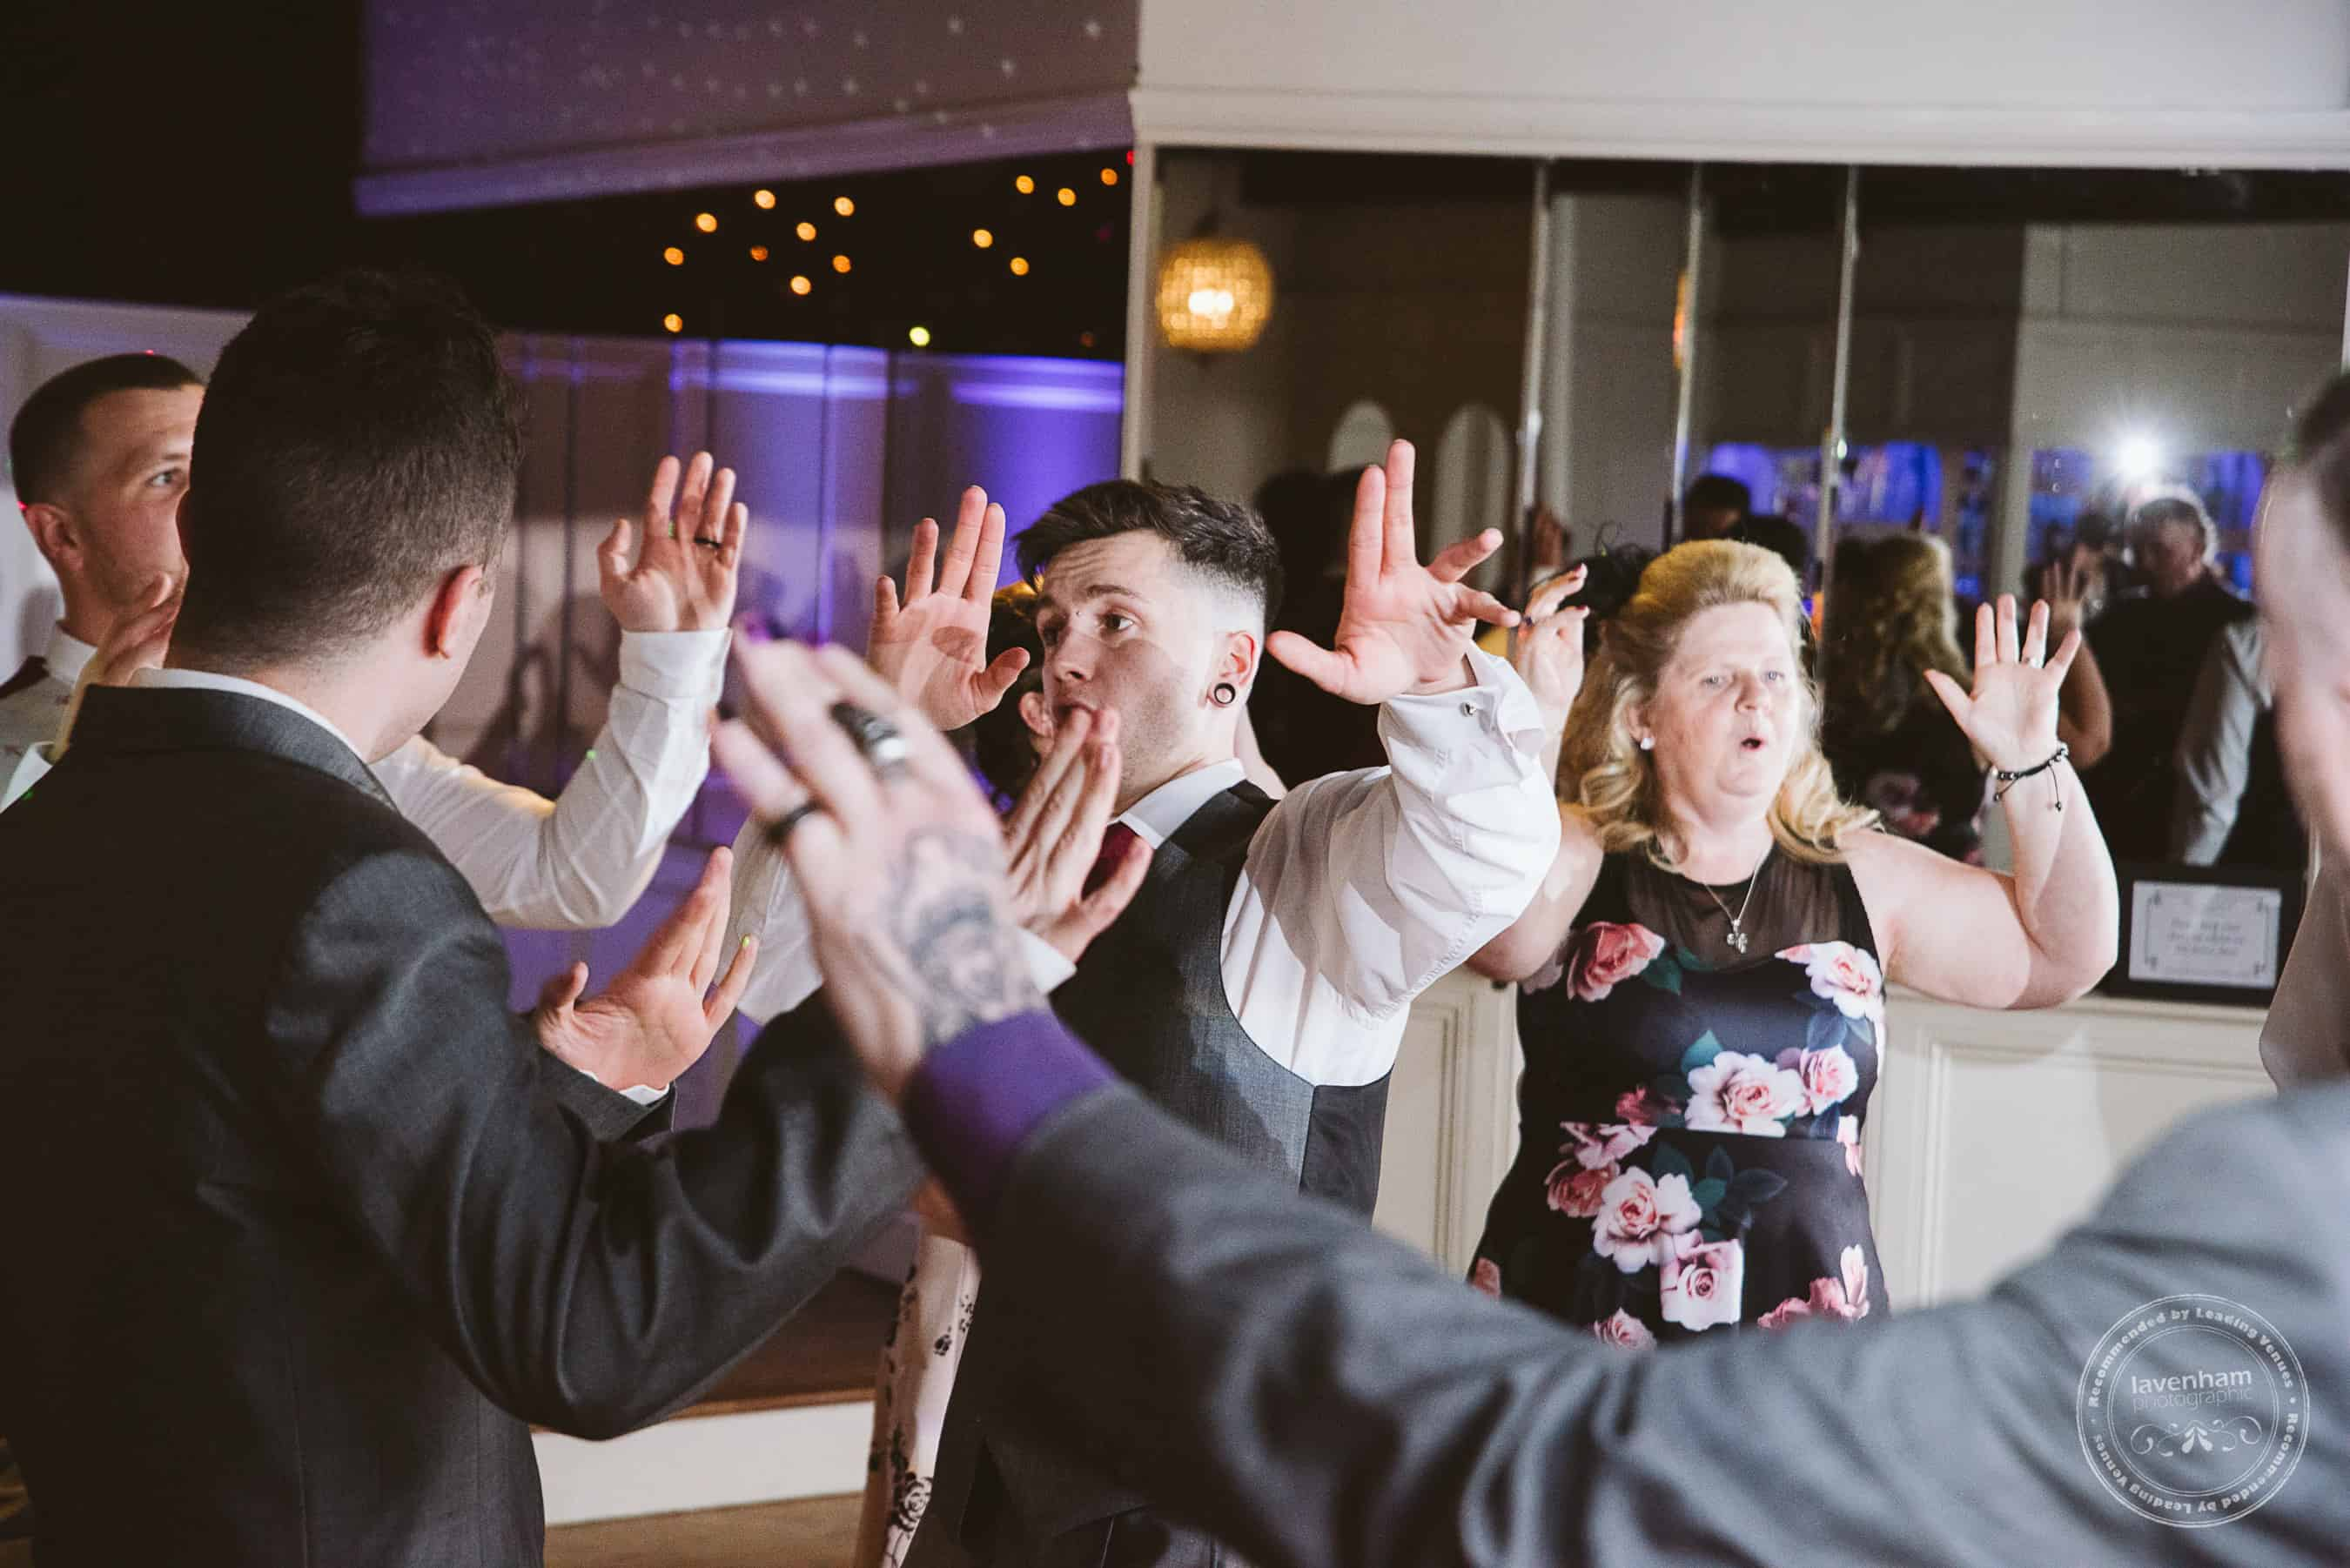 041118 Woodhall Manor Wedding Photography by Lavenham Photographic 128